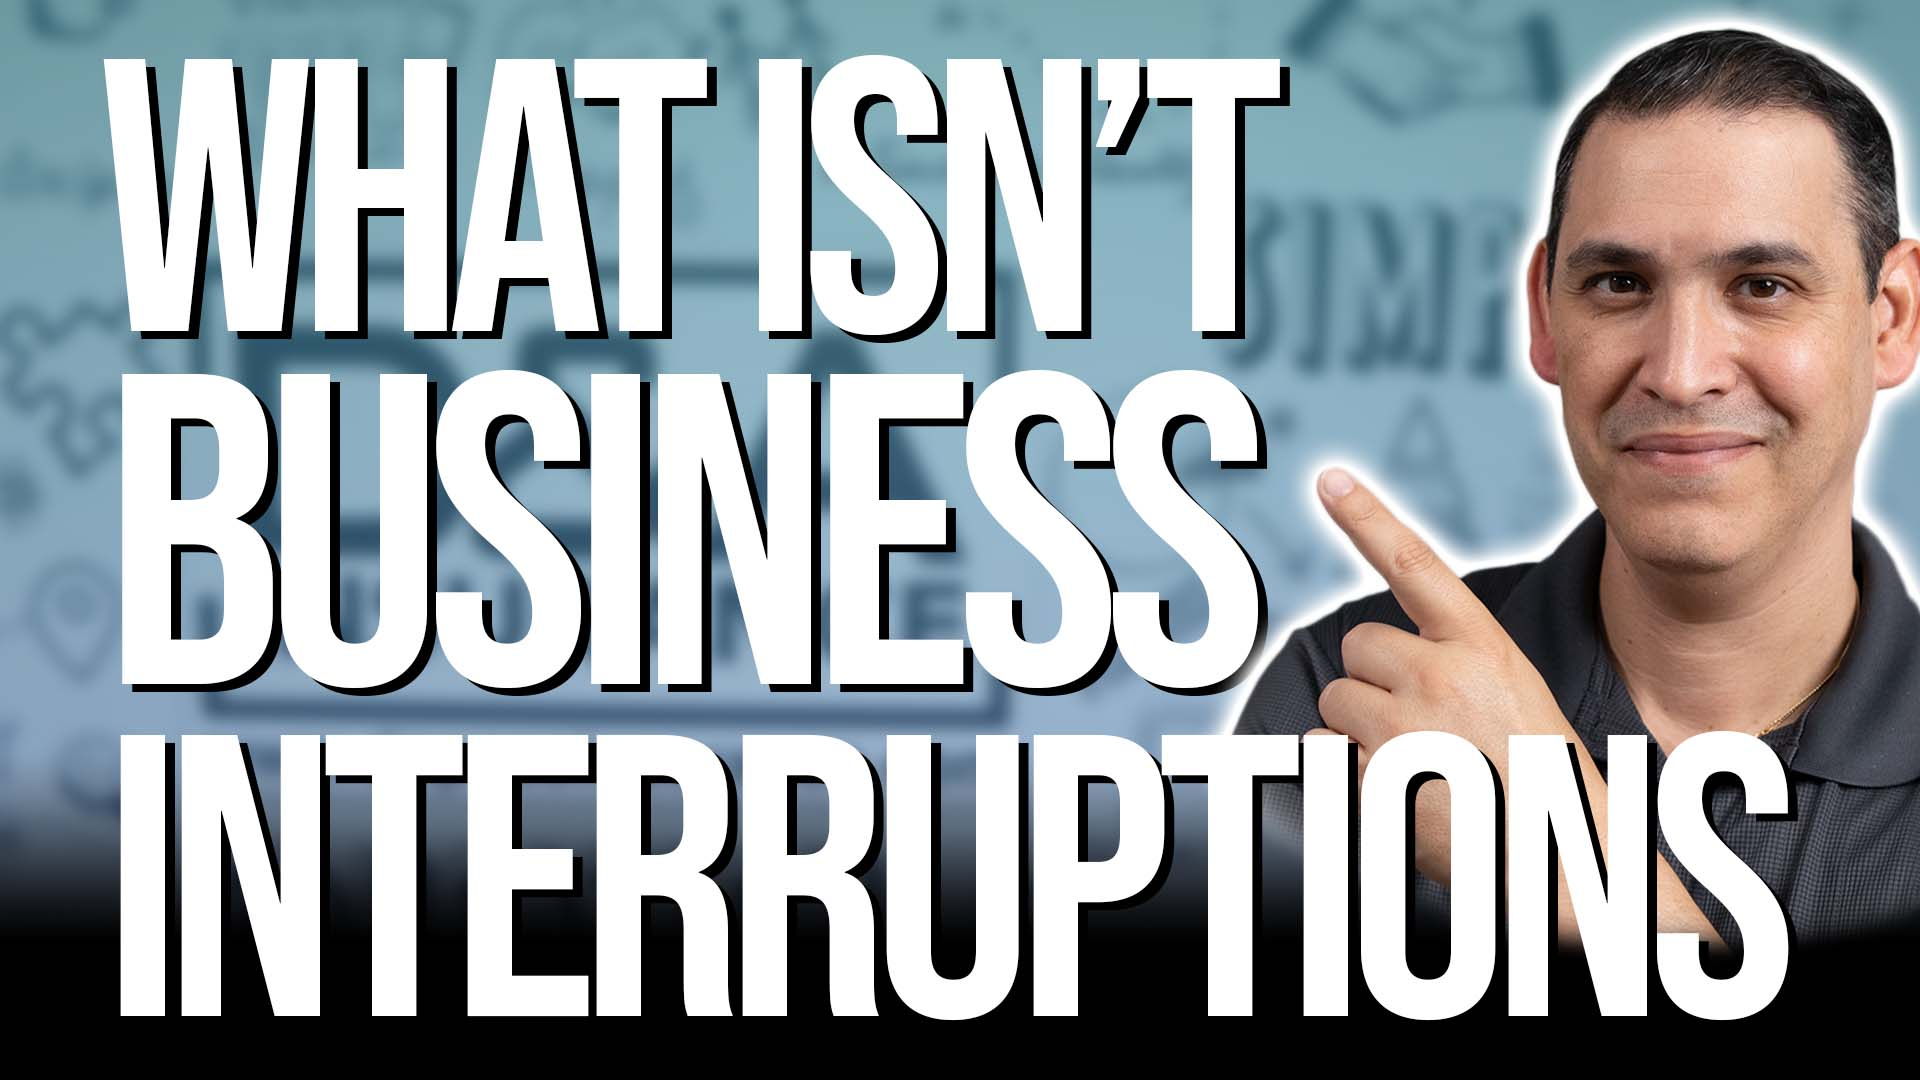 What Doesn't Count as Business Interruptions